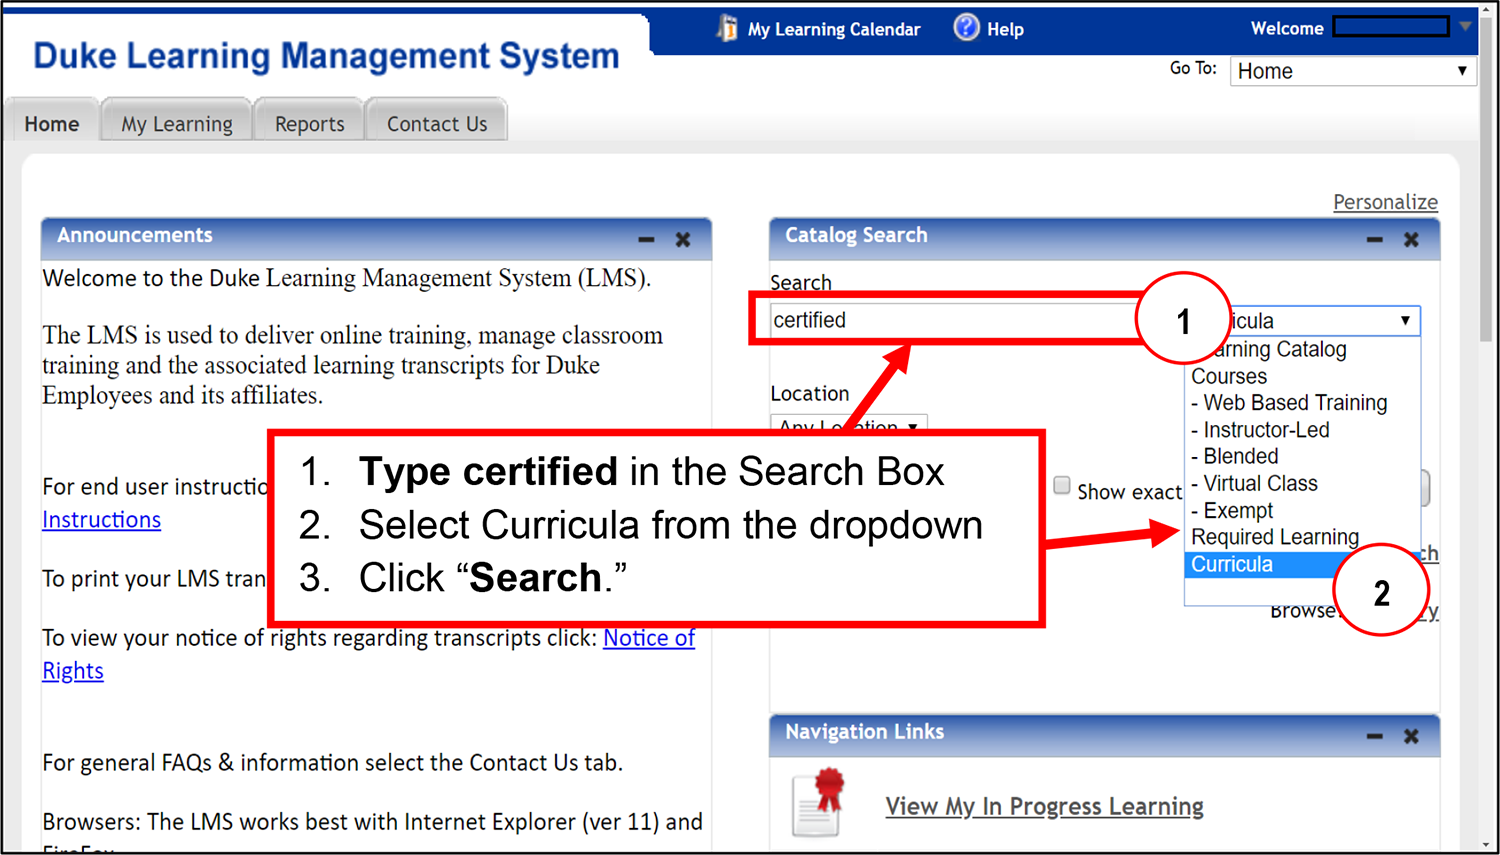 1) Type certified in the Search Box; 2) Select Curricula from the dropdown; 3) Click Search